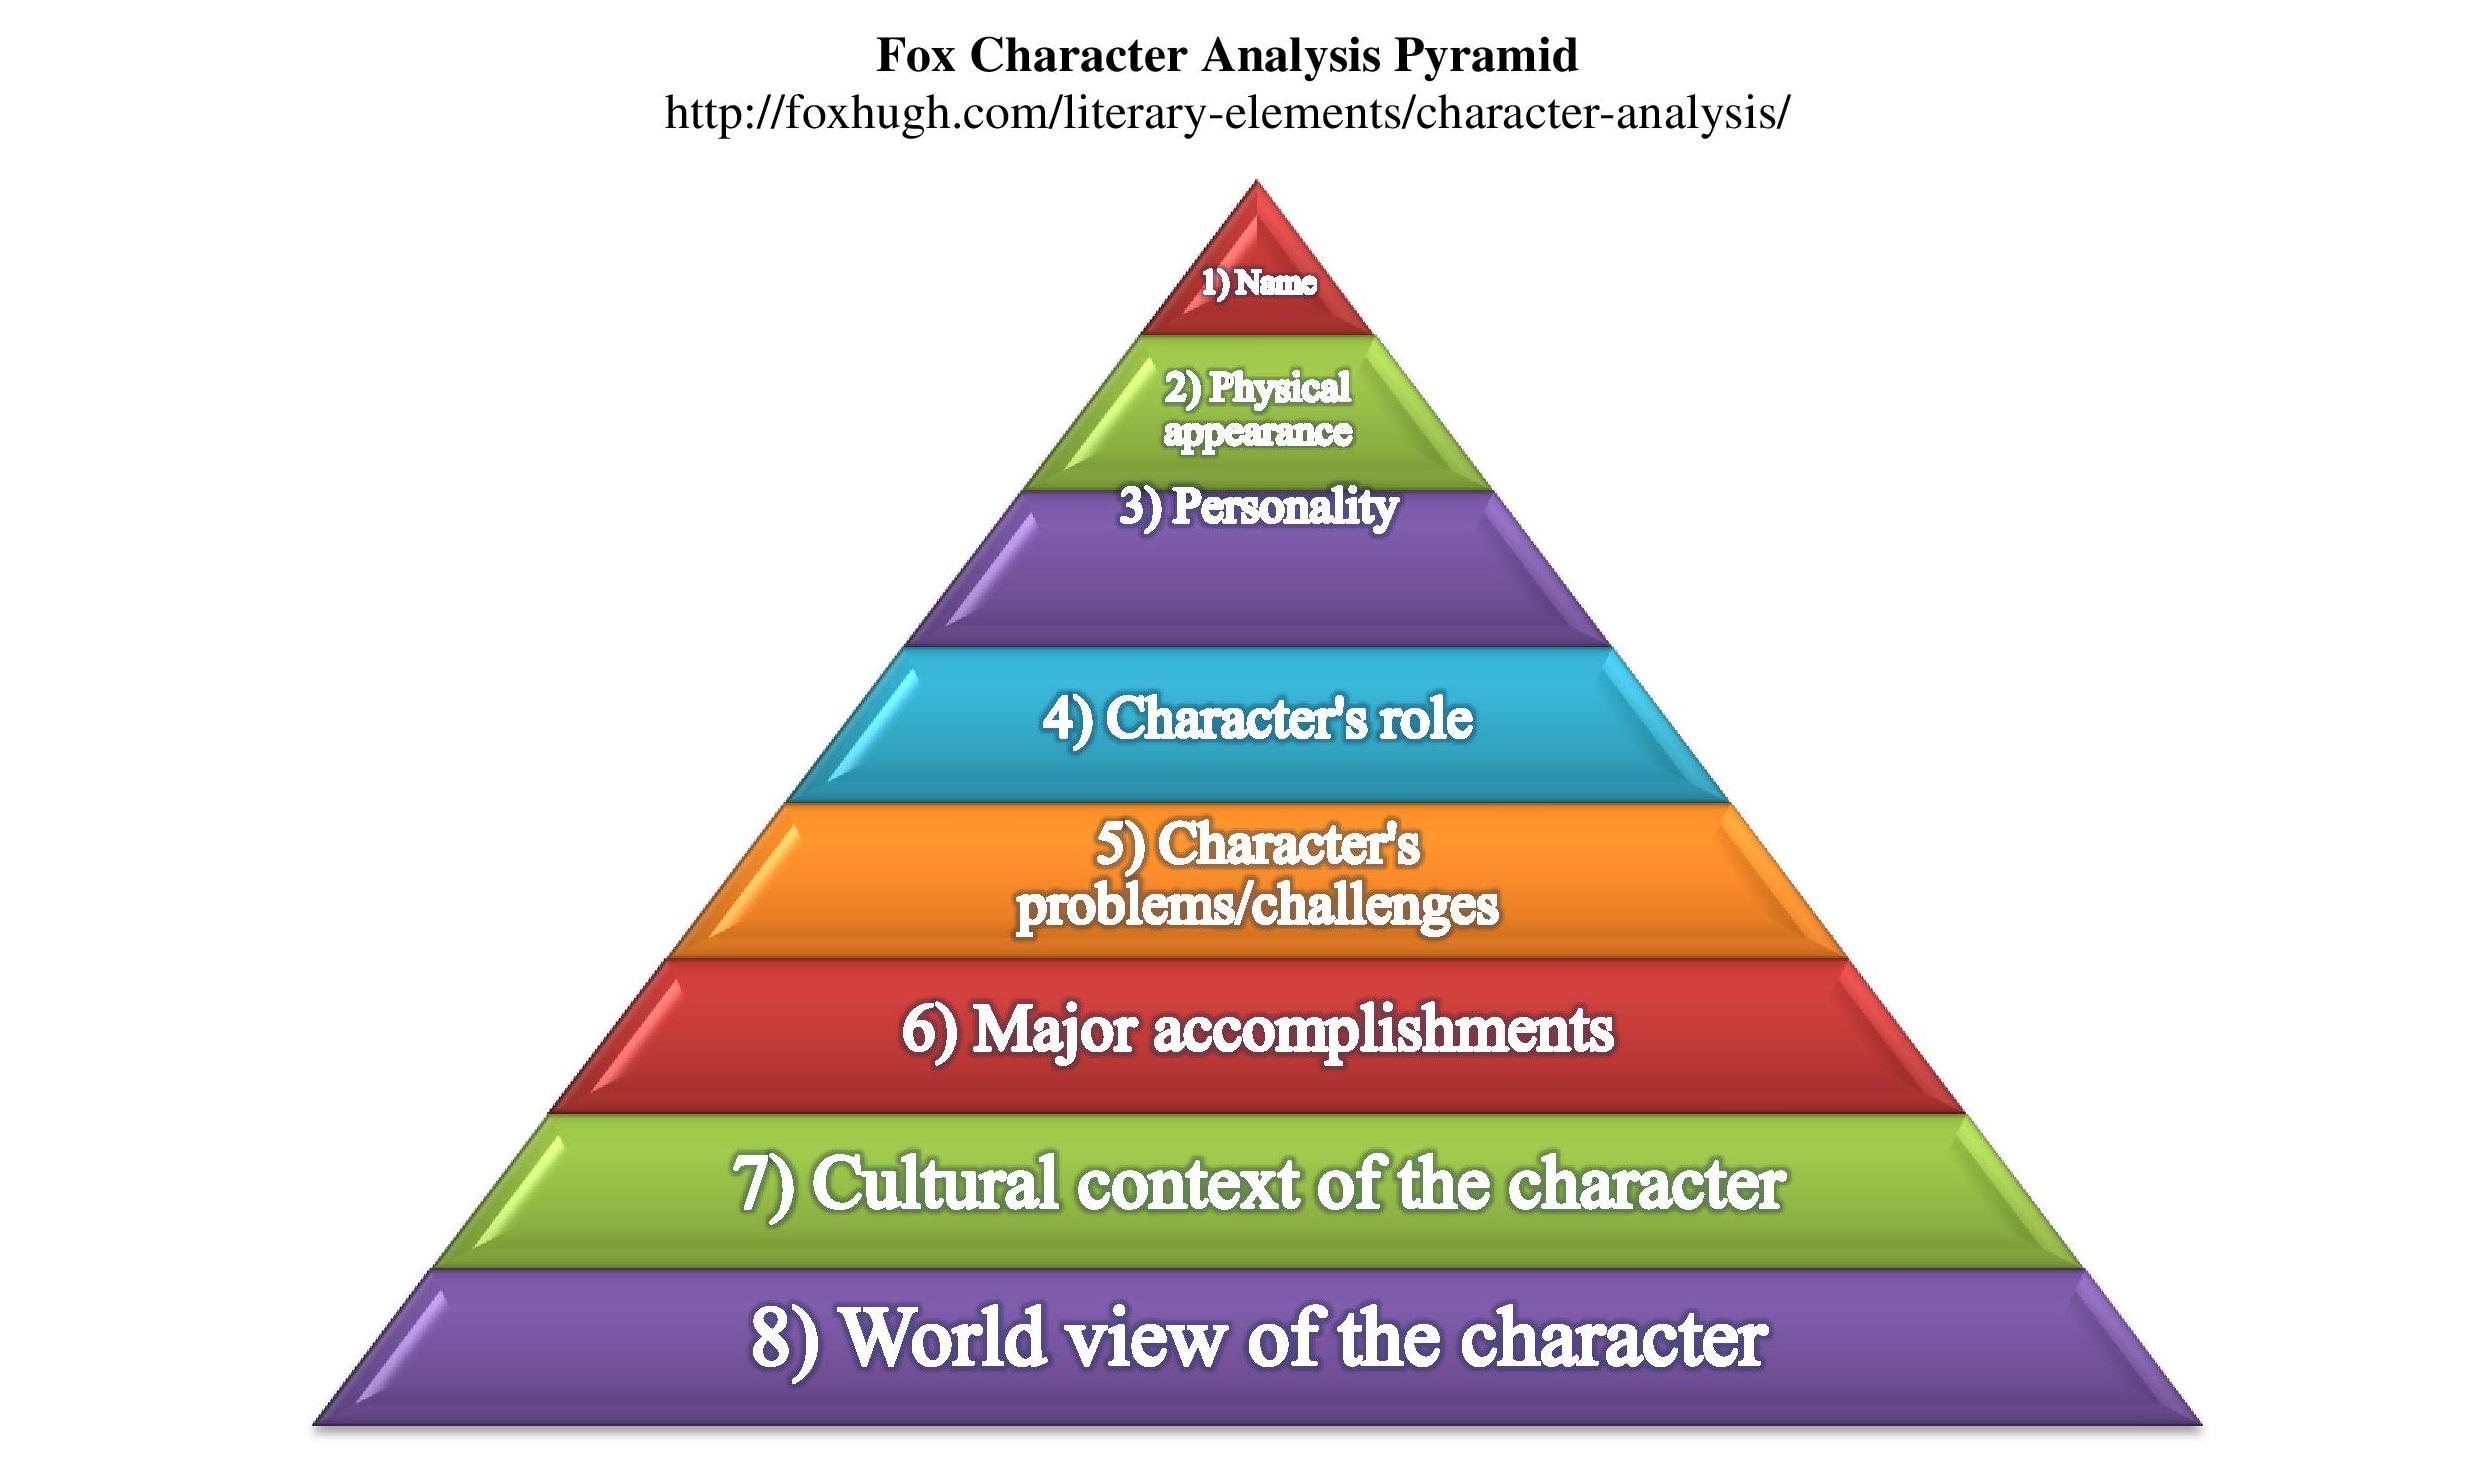 fox character analysis pyramid hugh fox iii fox character analysis pyramid